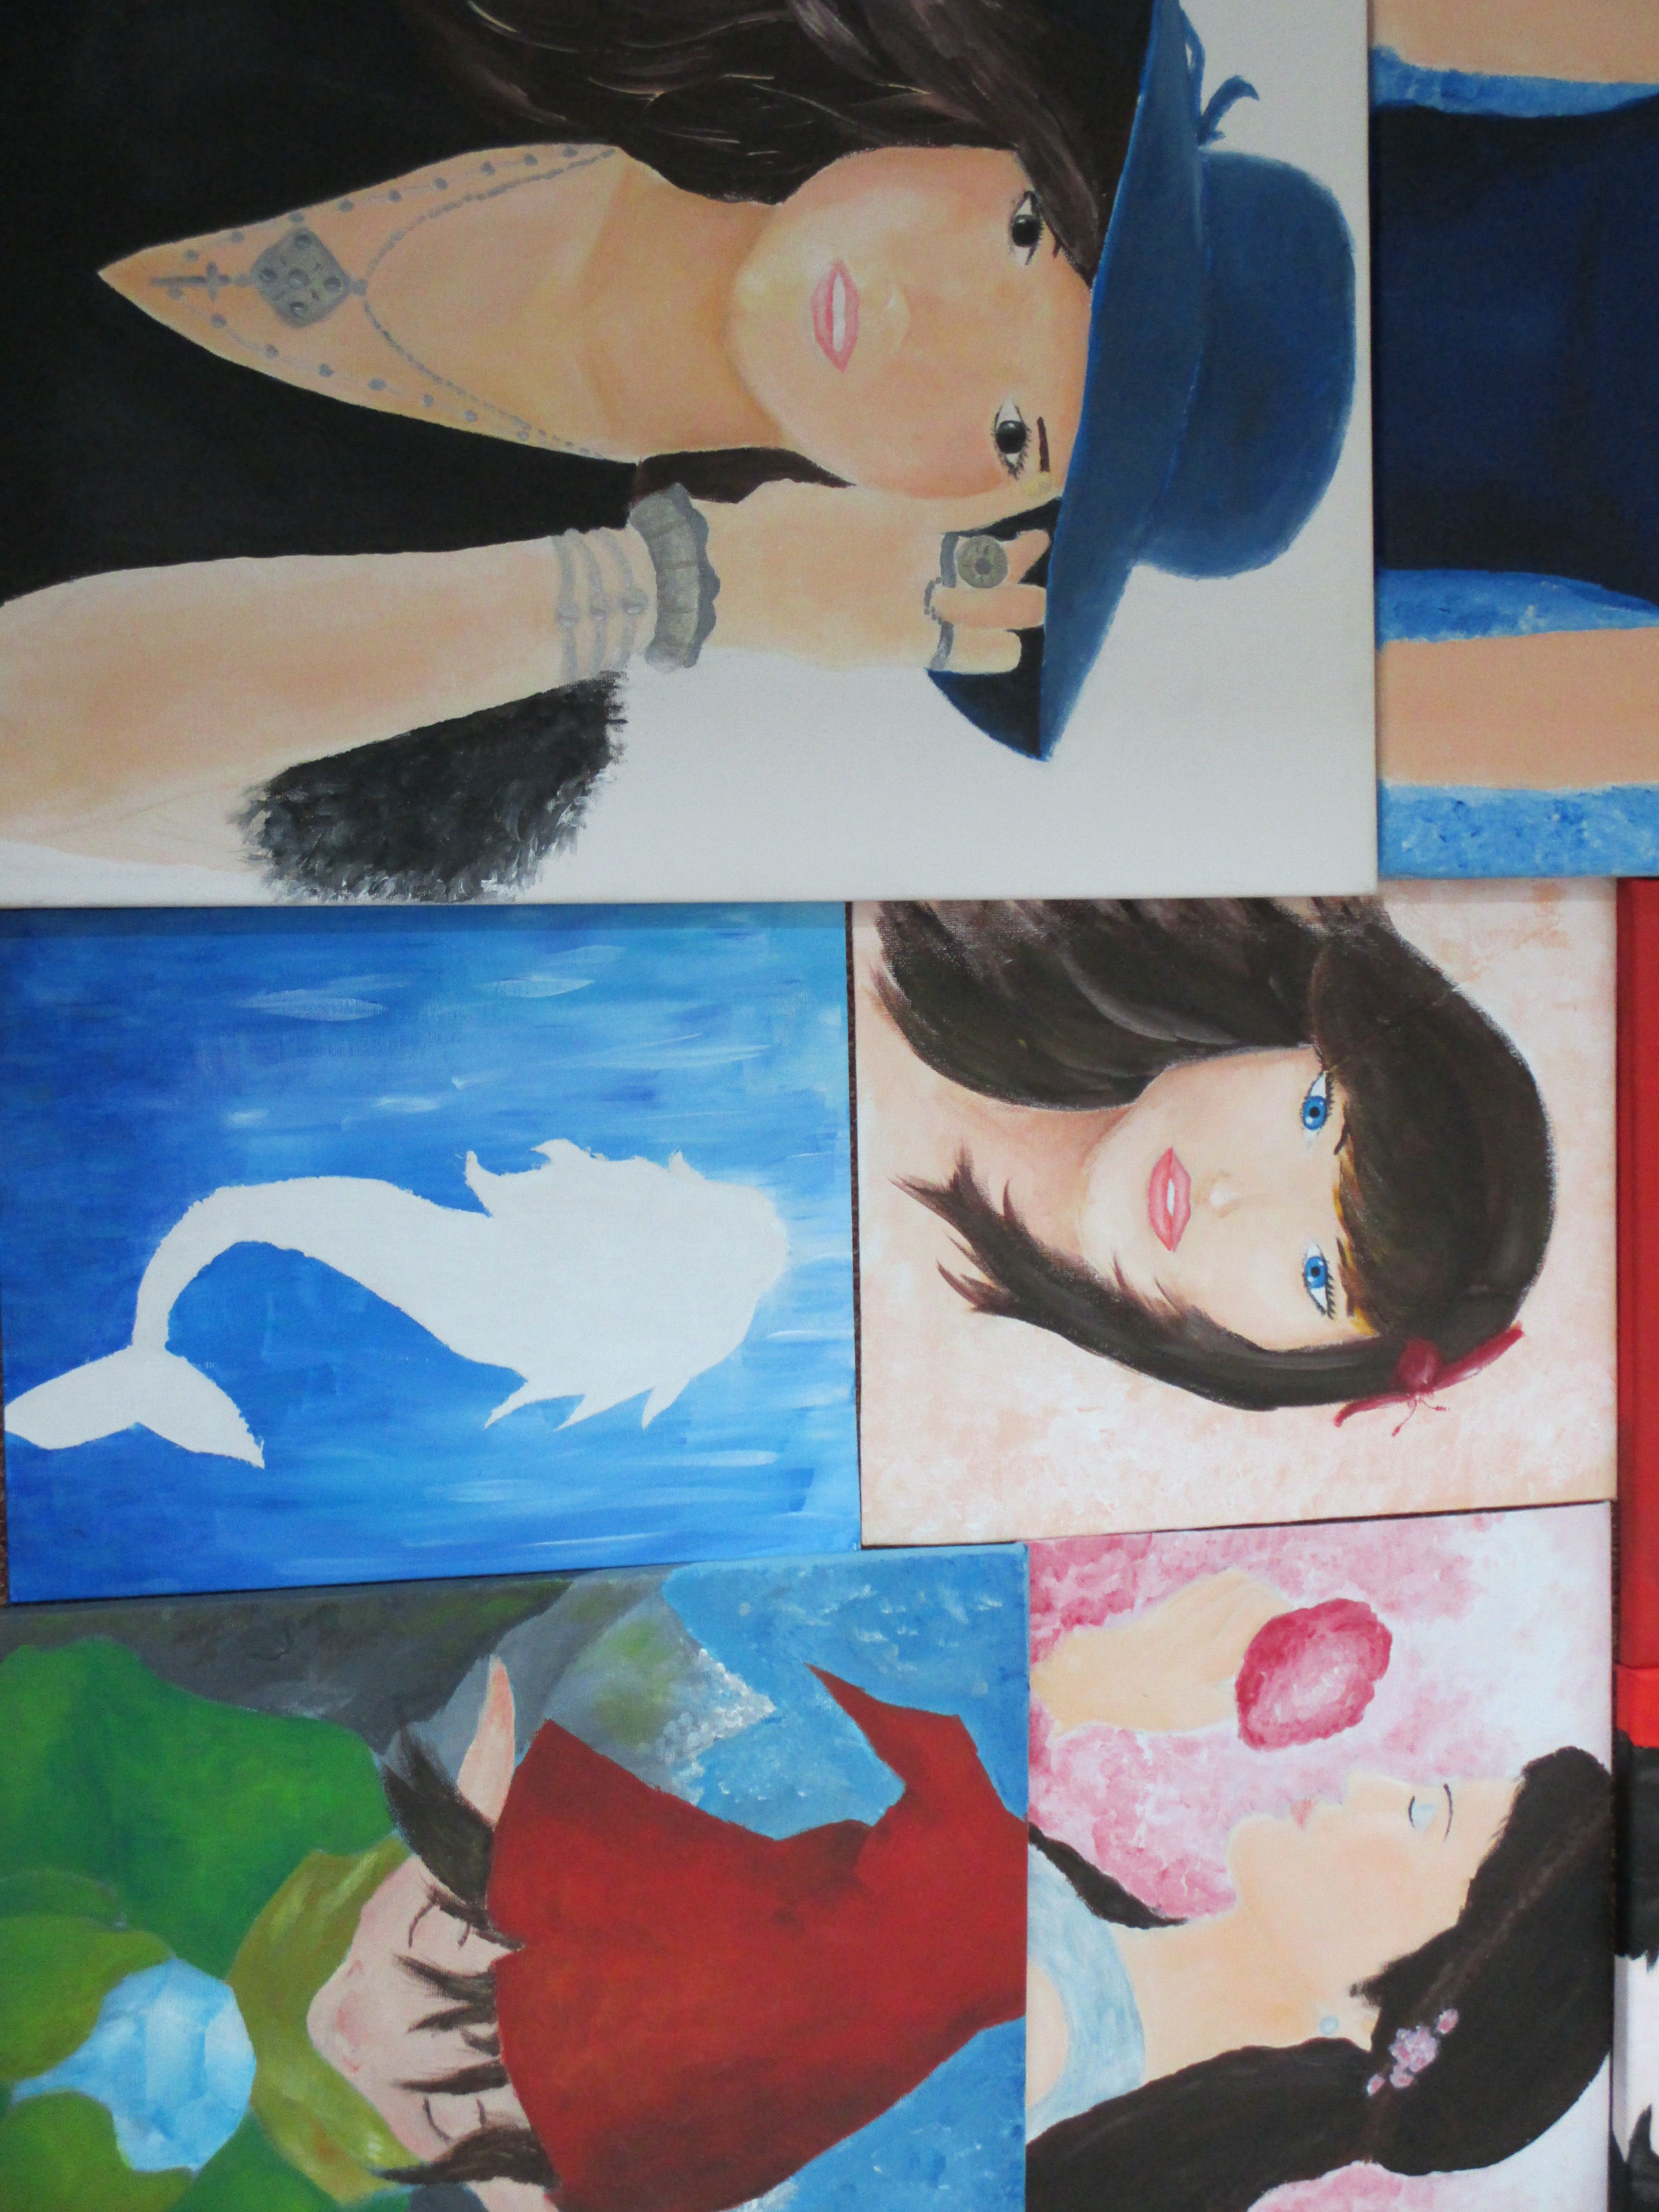 Some paintings I made